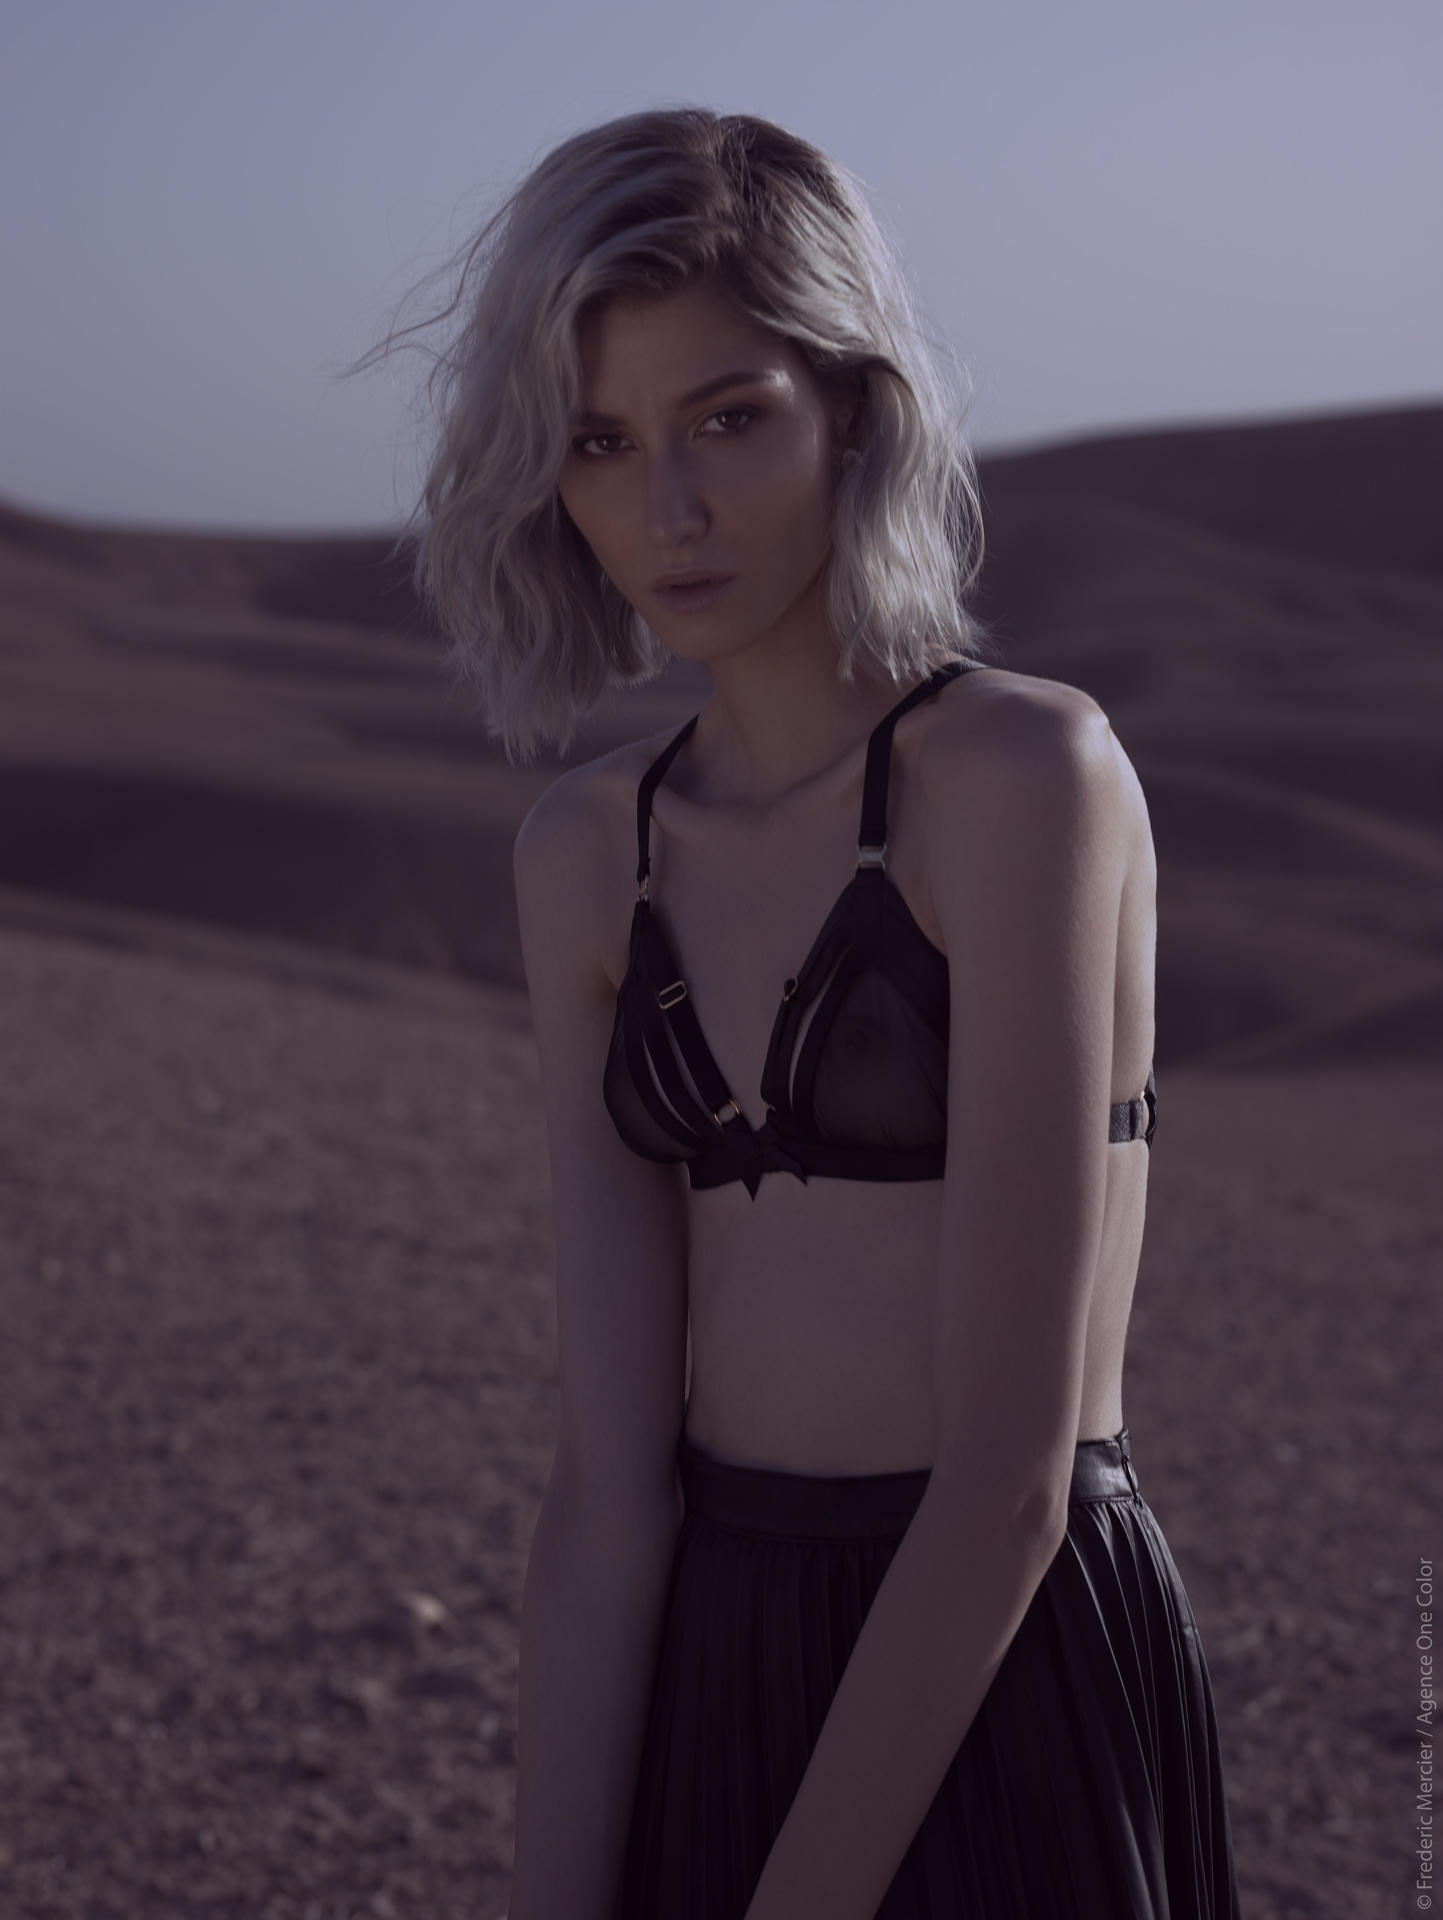 desert american wild lifestyle lingerie bordelle frederic mercier photographer one color